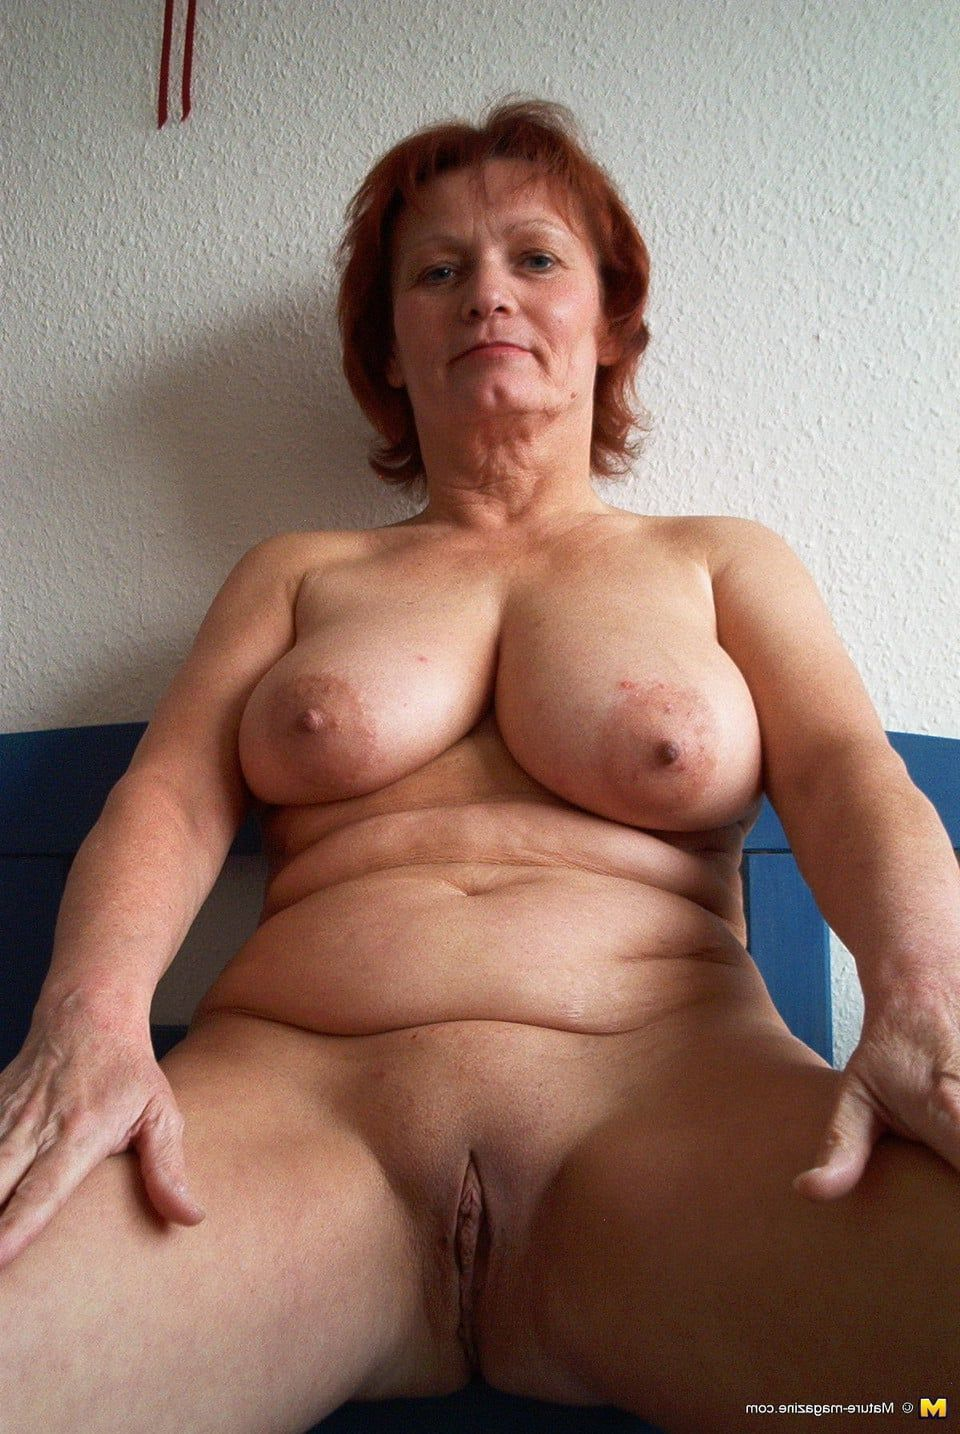 Old Female Porn naked old woman porn - quality porn. comments: 1